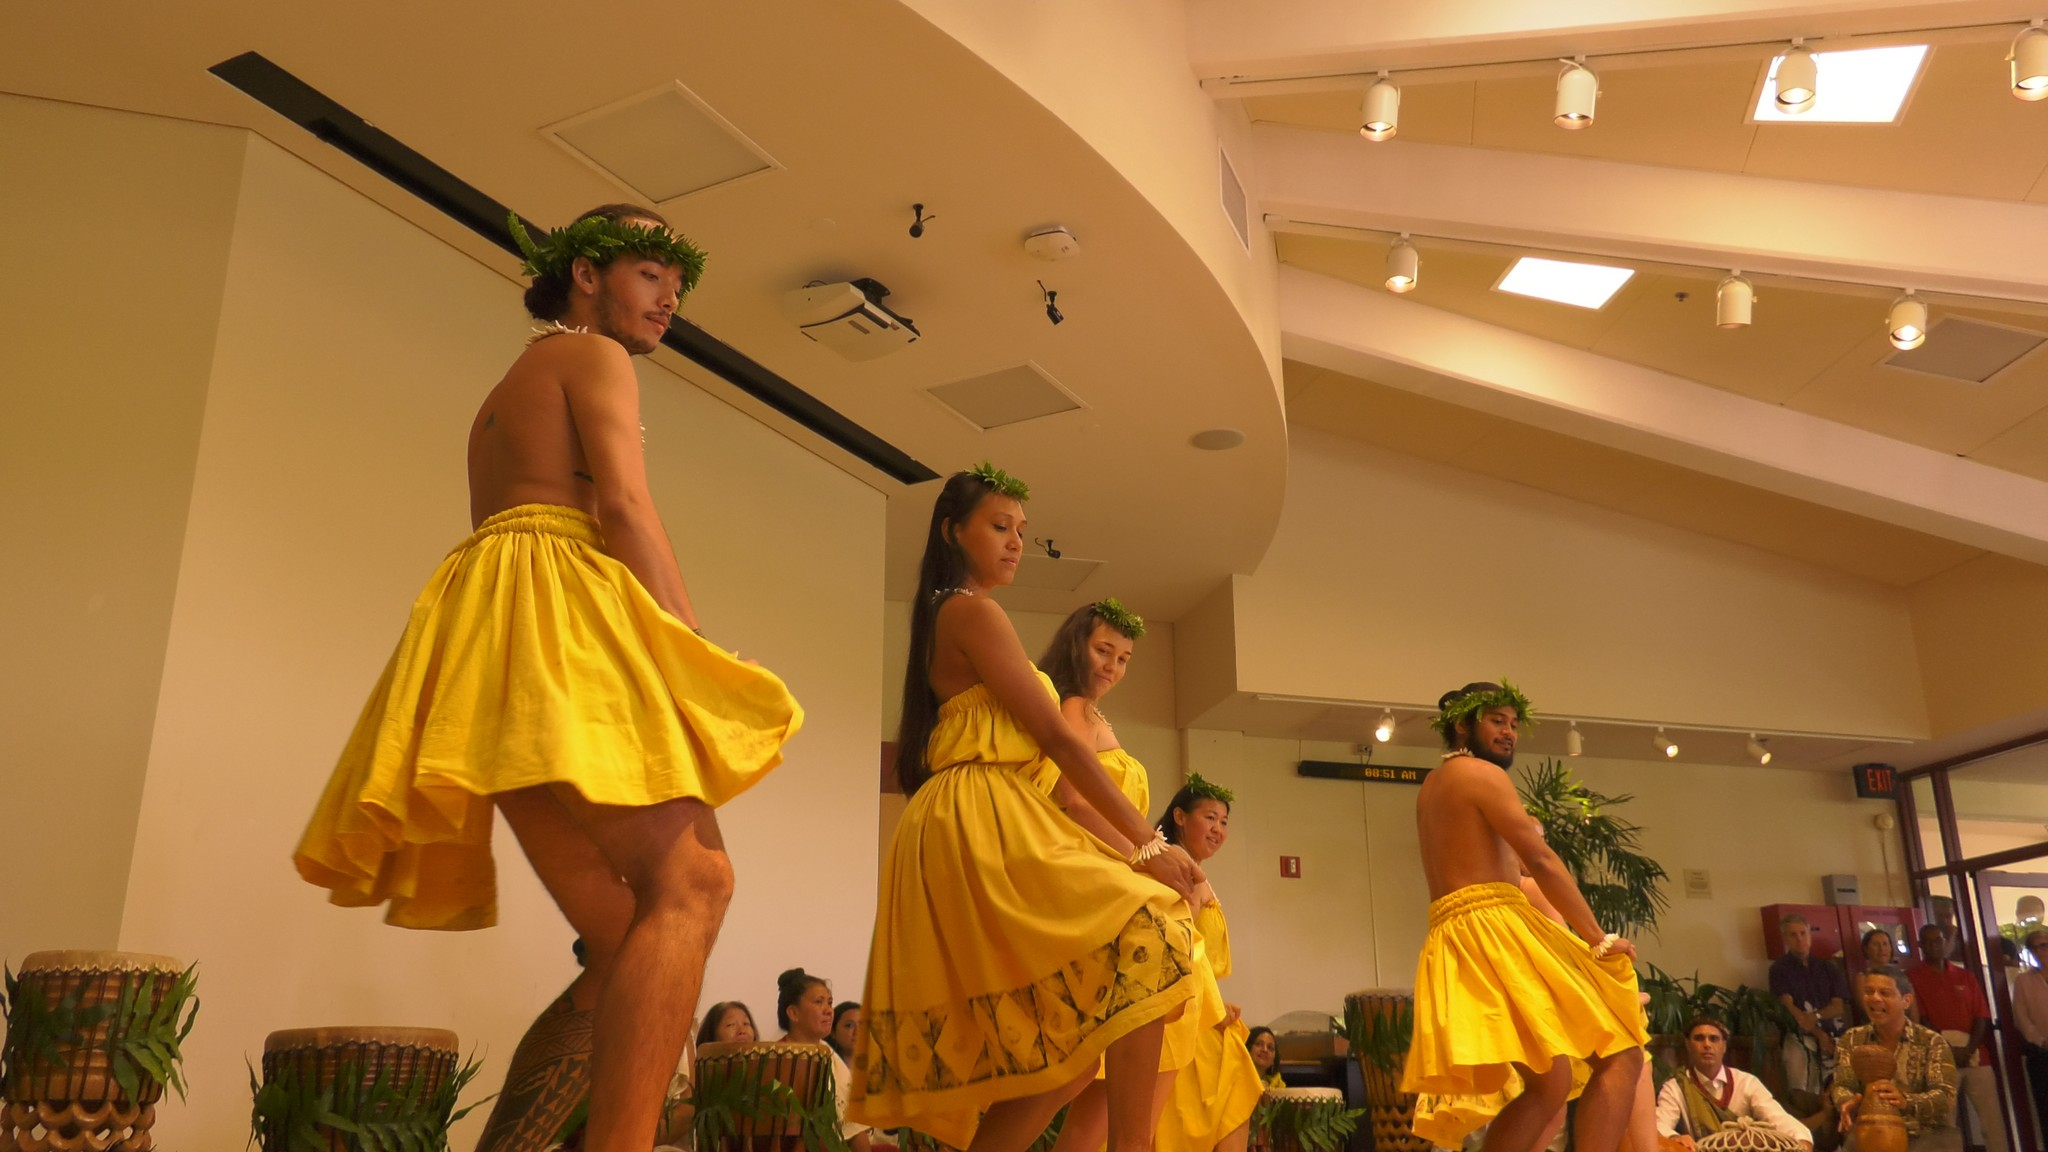 Dancers in yellow. Drums in background.